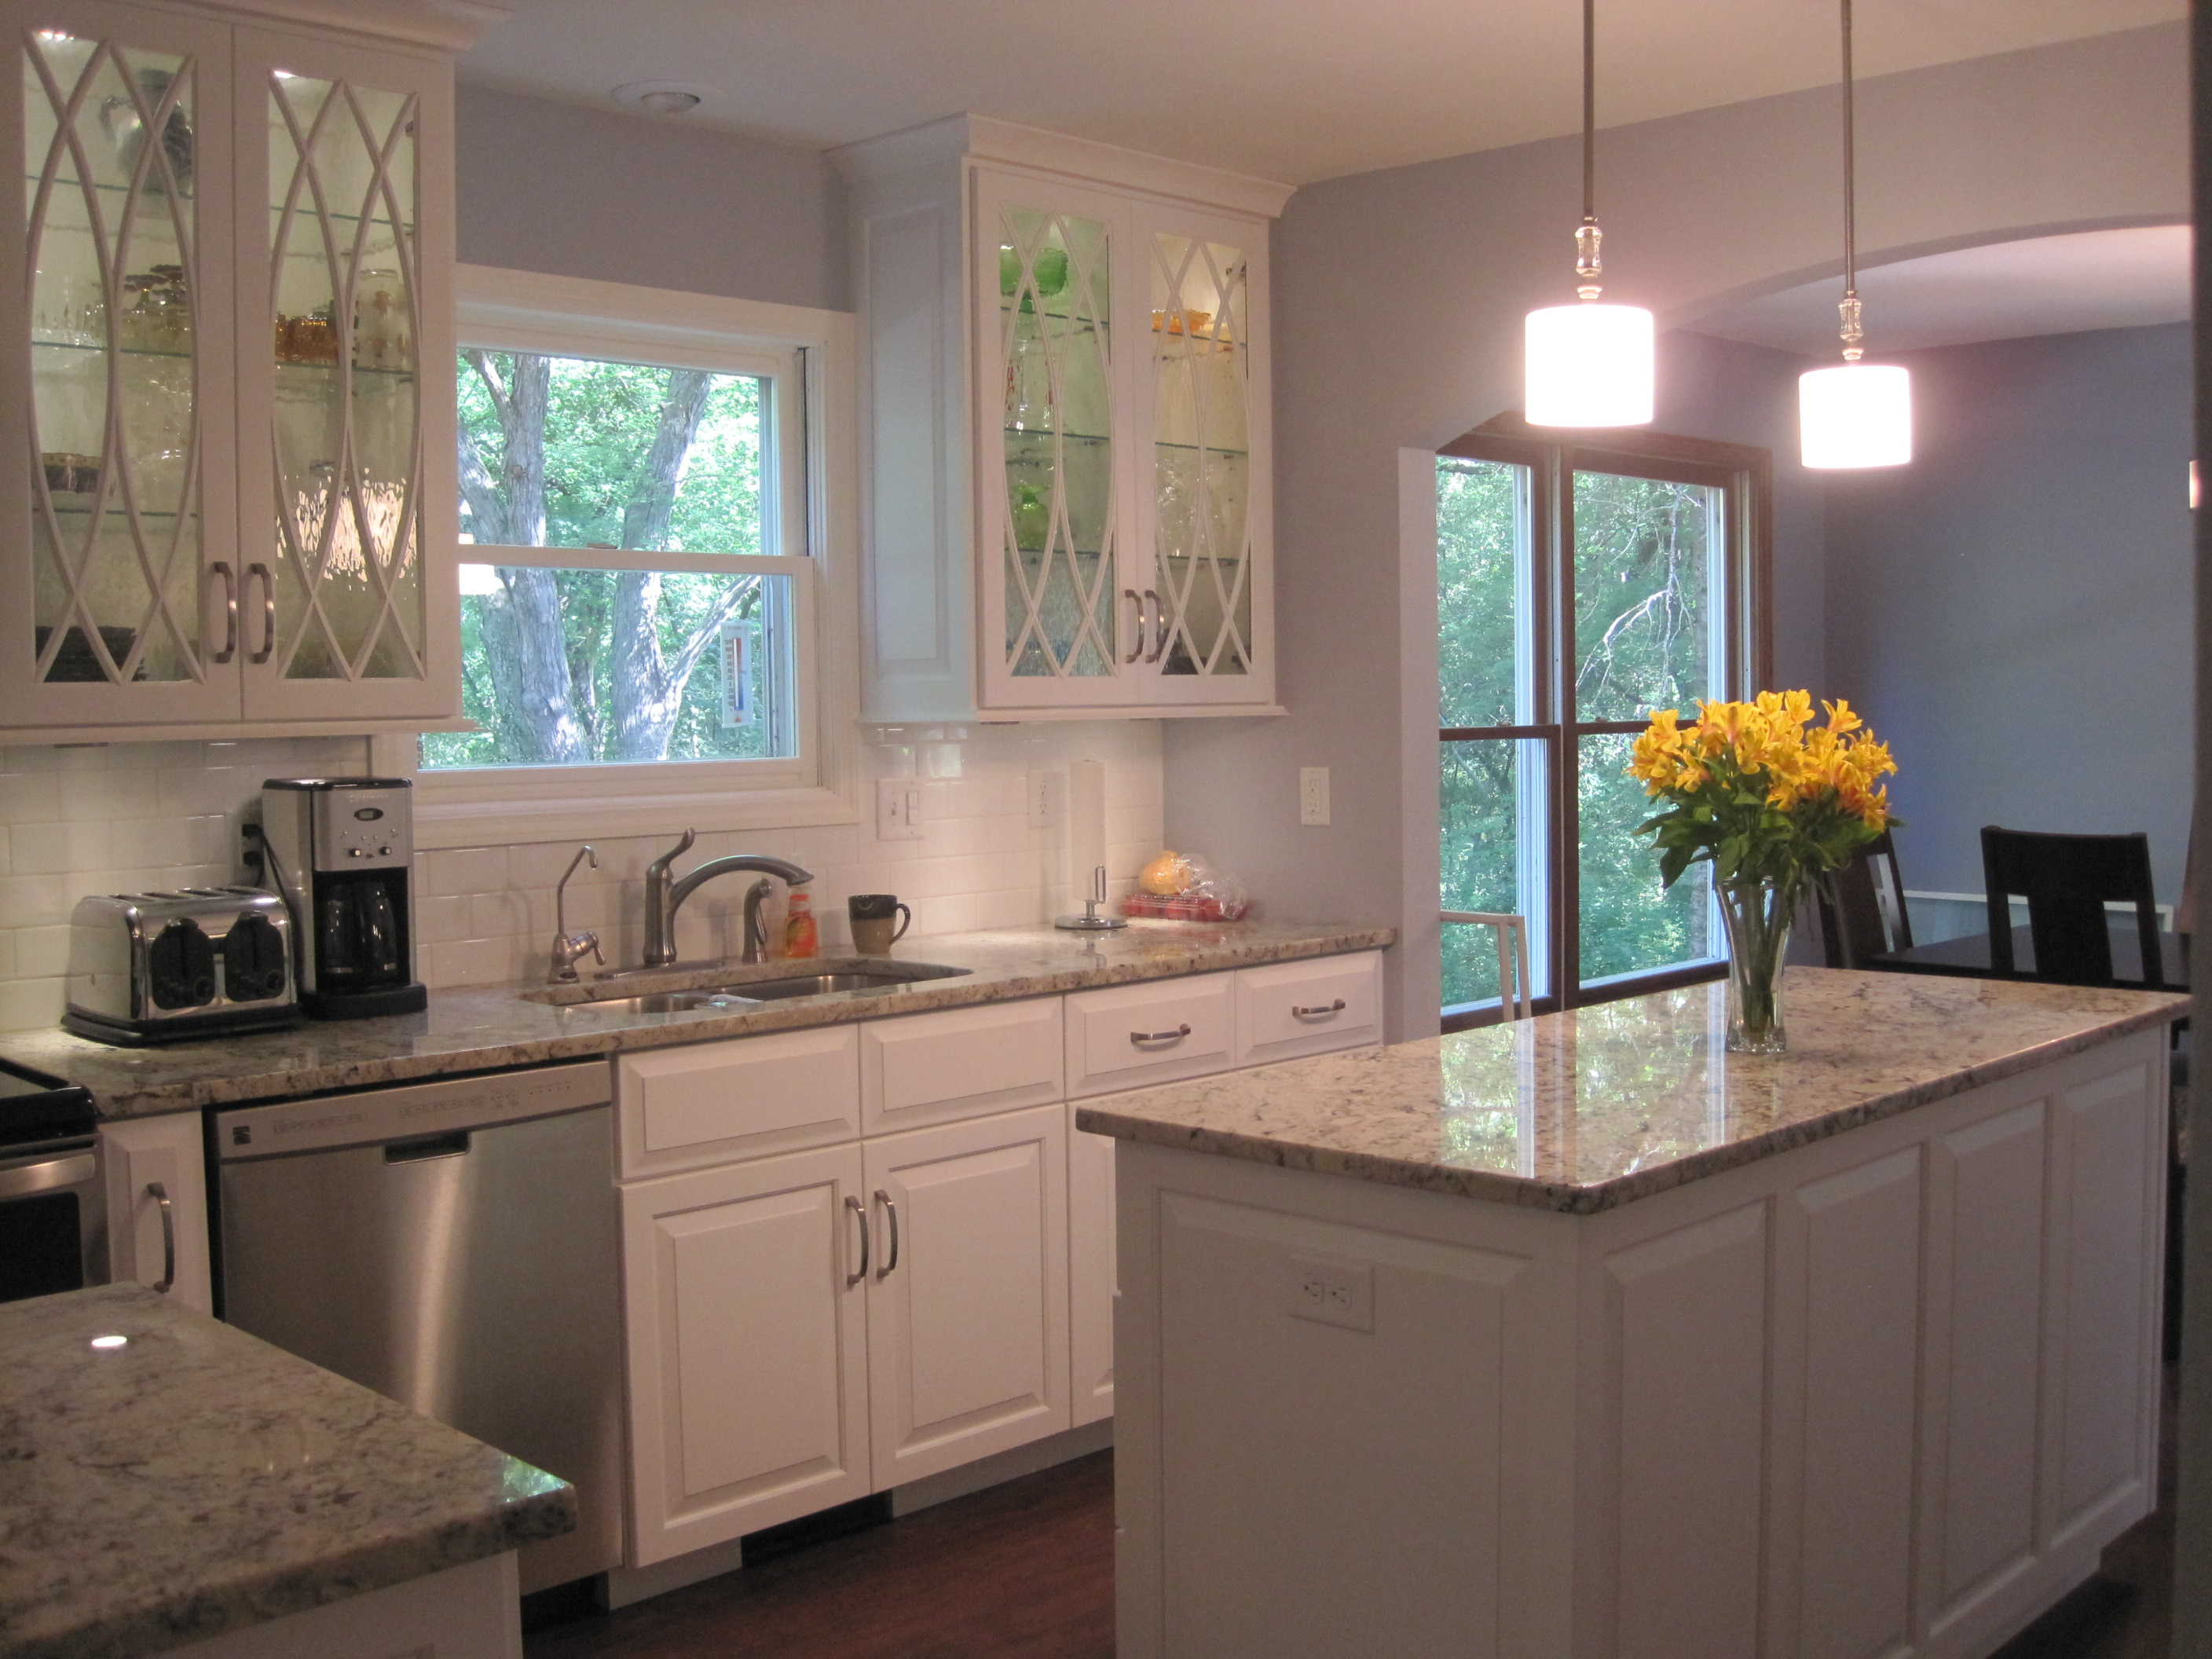 Home decorators lake zurich il best free home design for Kitchen design zurich